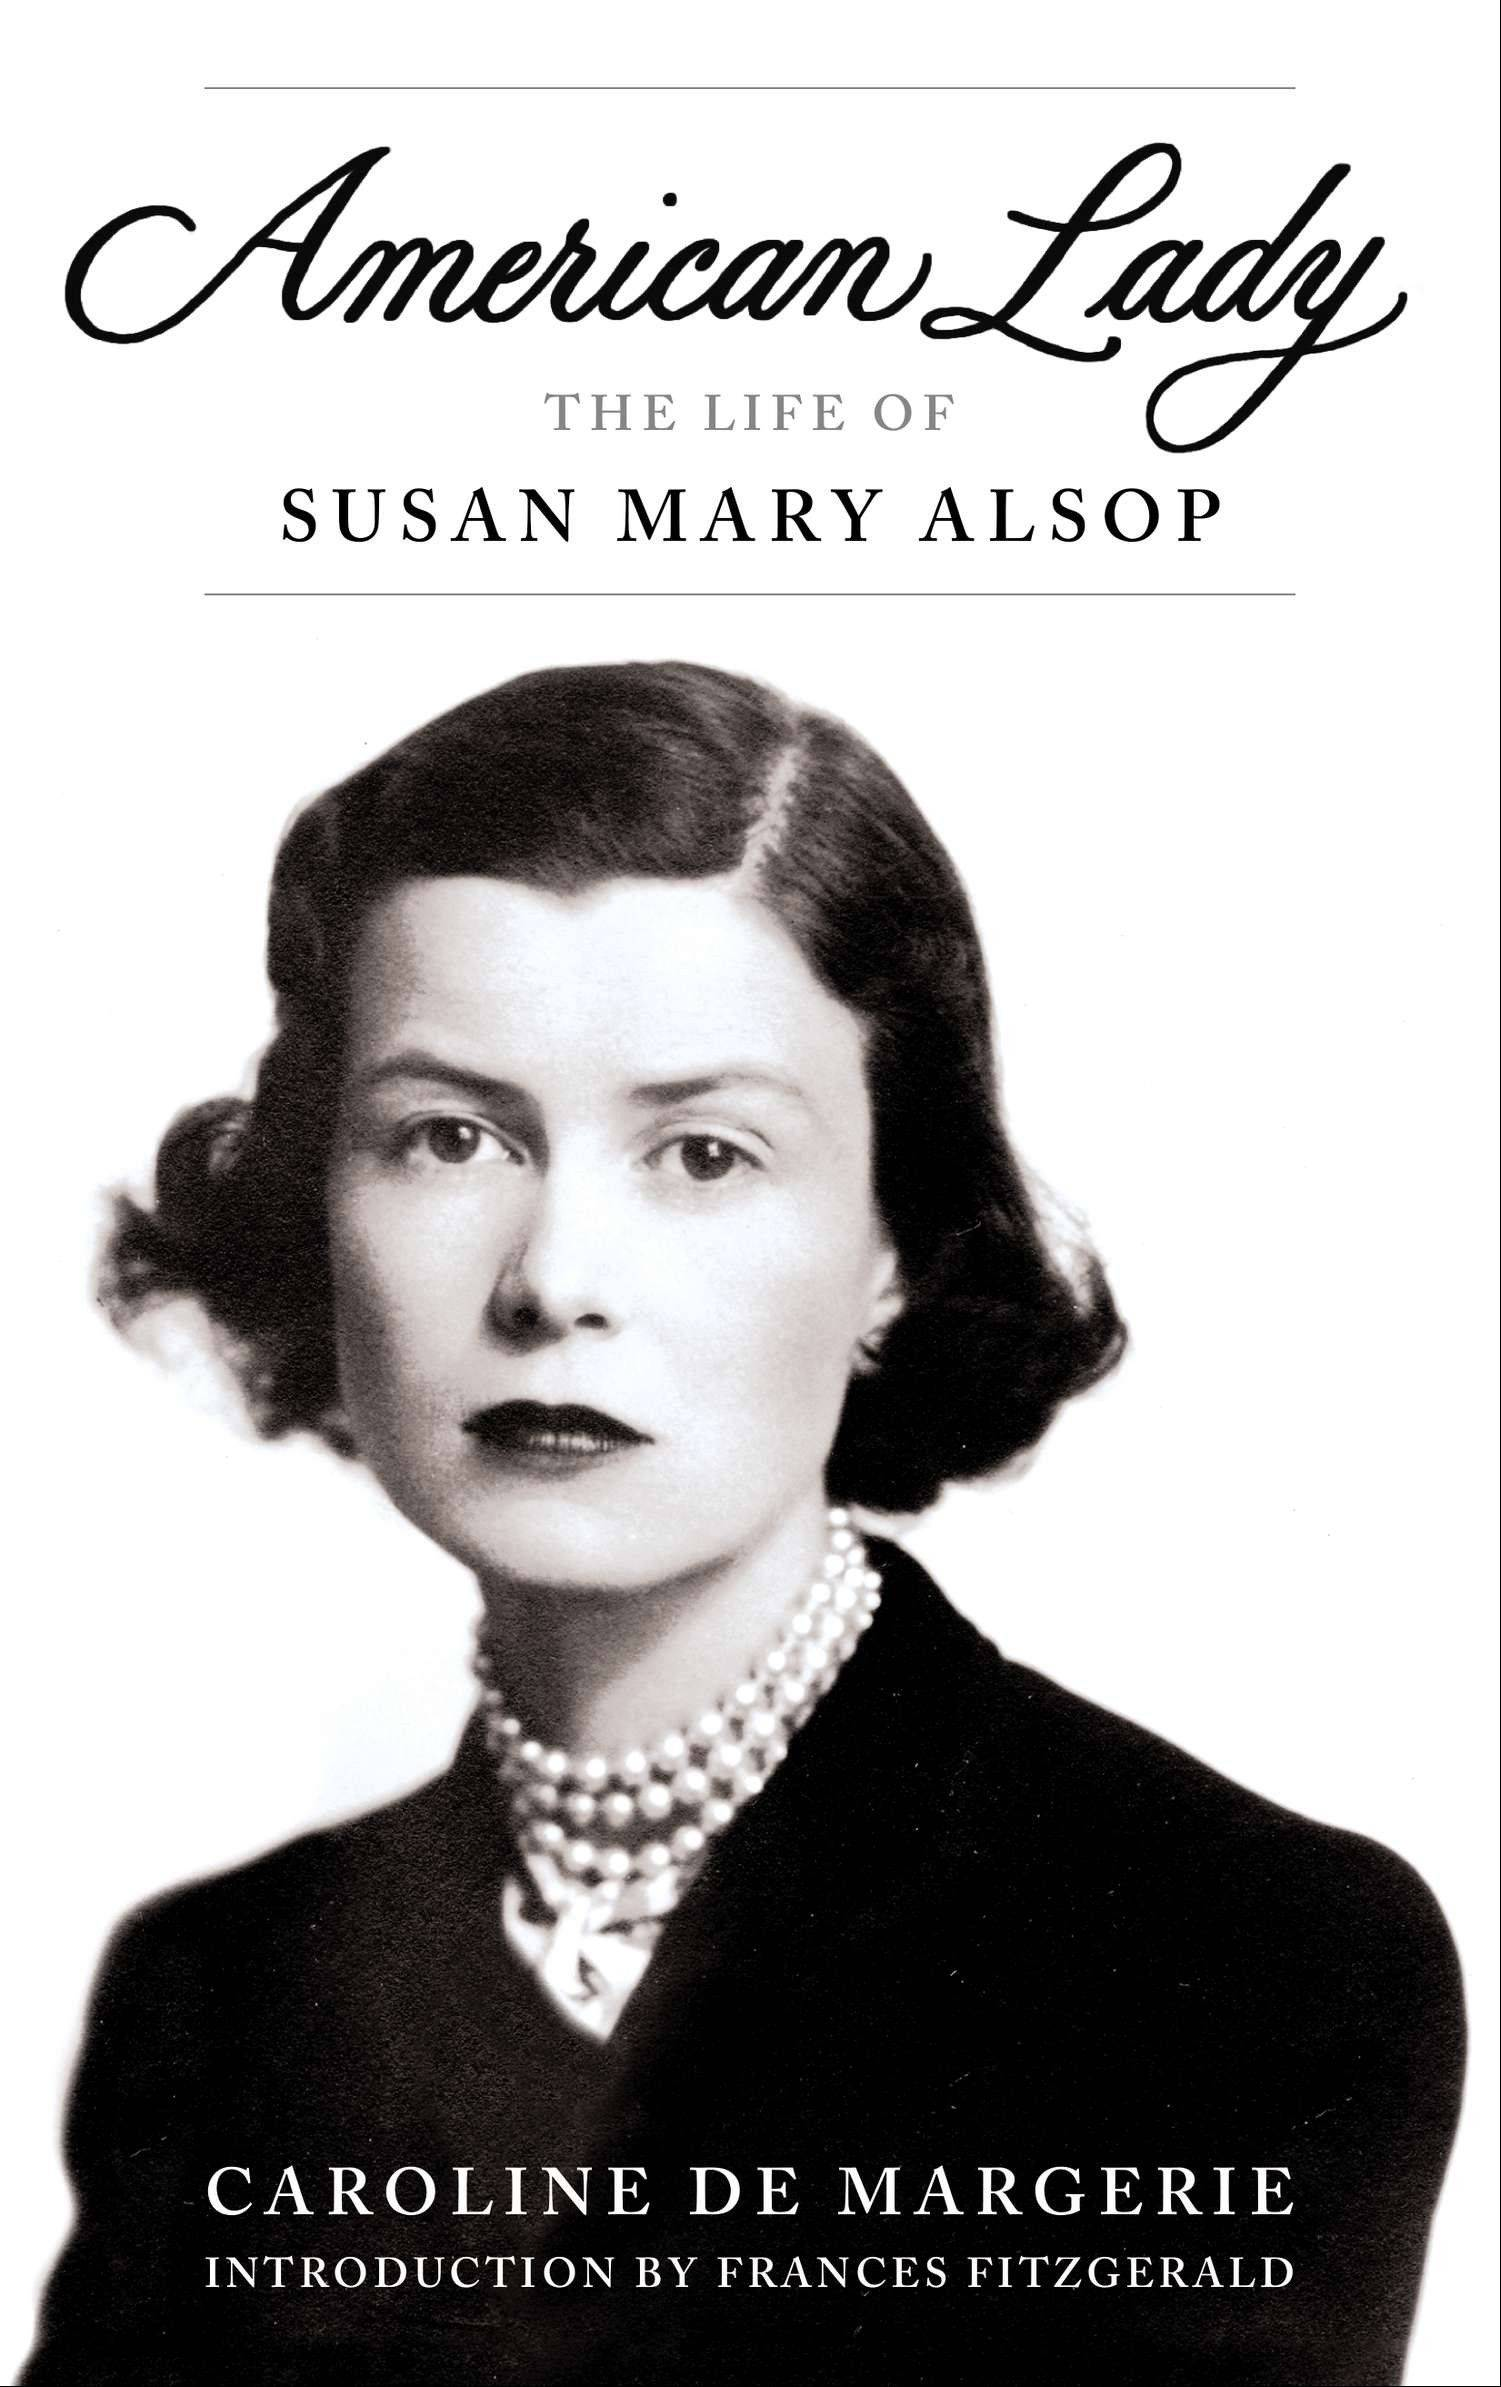 """American Lady: The Life of Susan Mary Alsop"" by Caroline de Margerie"